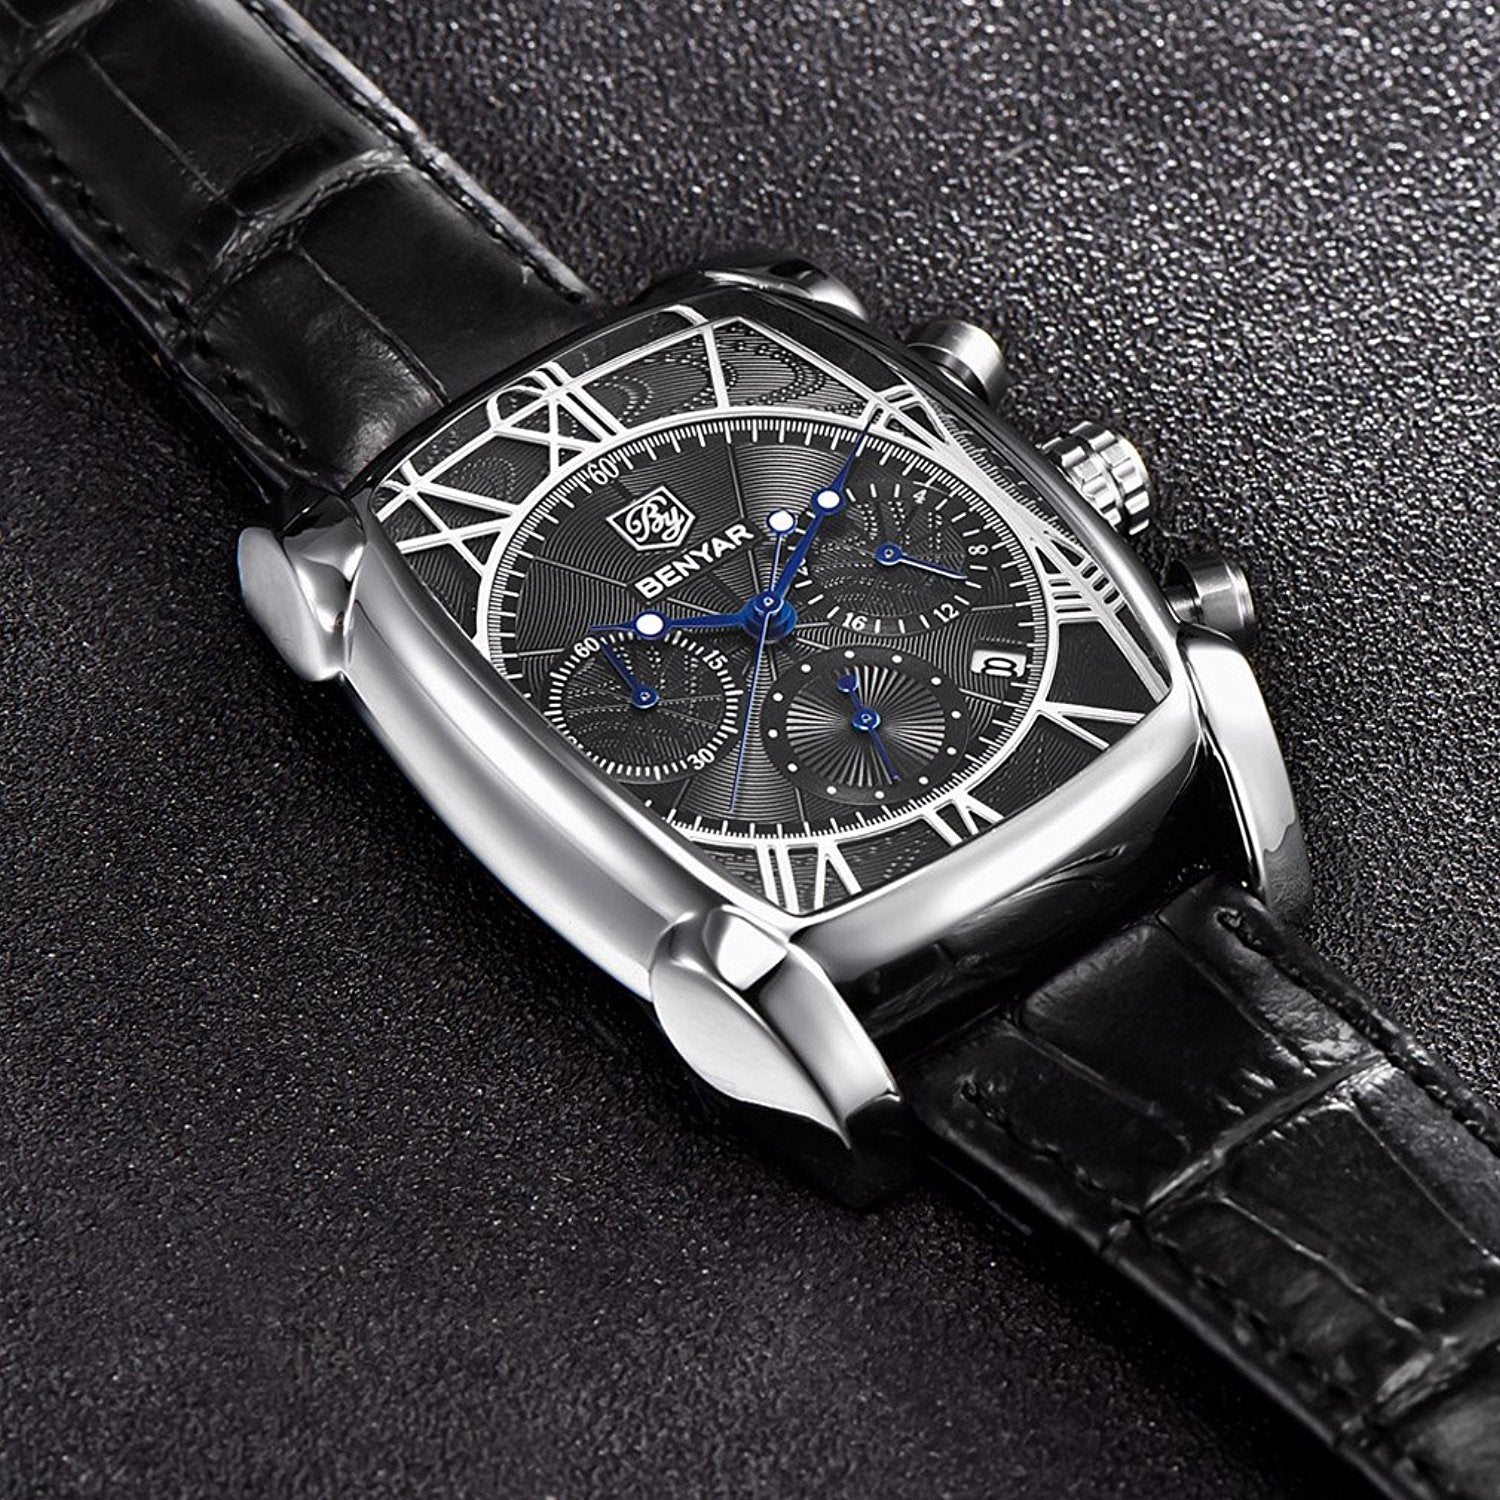 hot watches luxury cadisen men top waterproof automatic style sapphire sale mechanical role business p glass item watch dropship